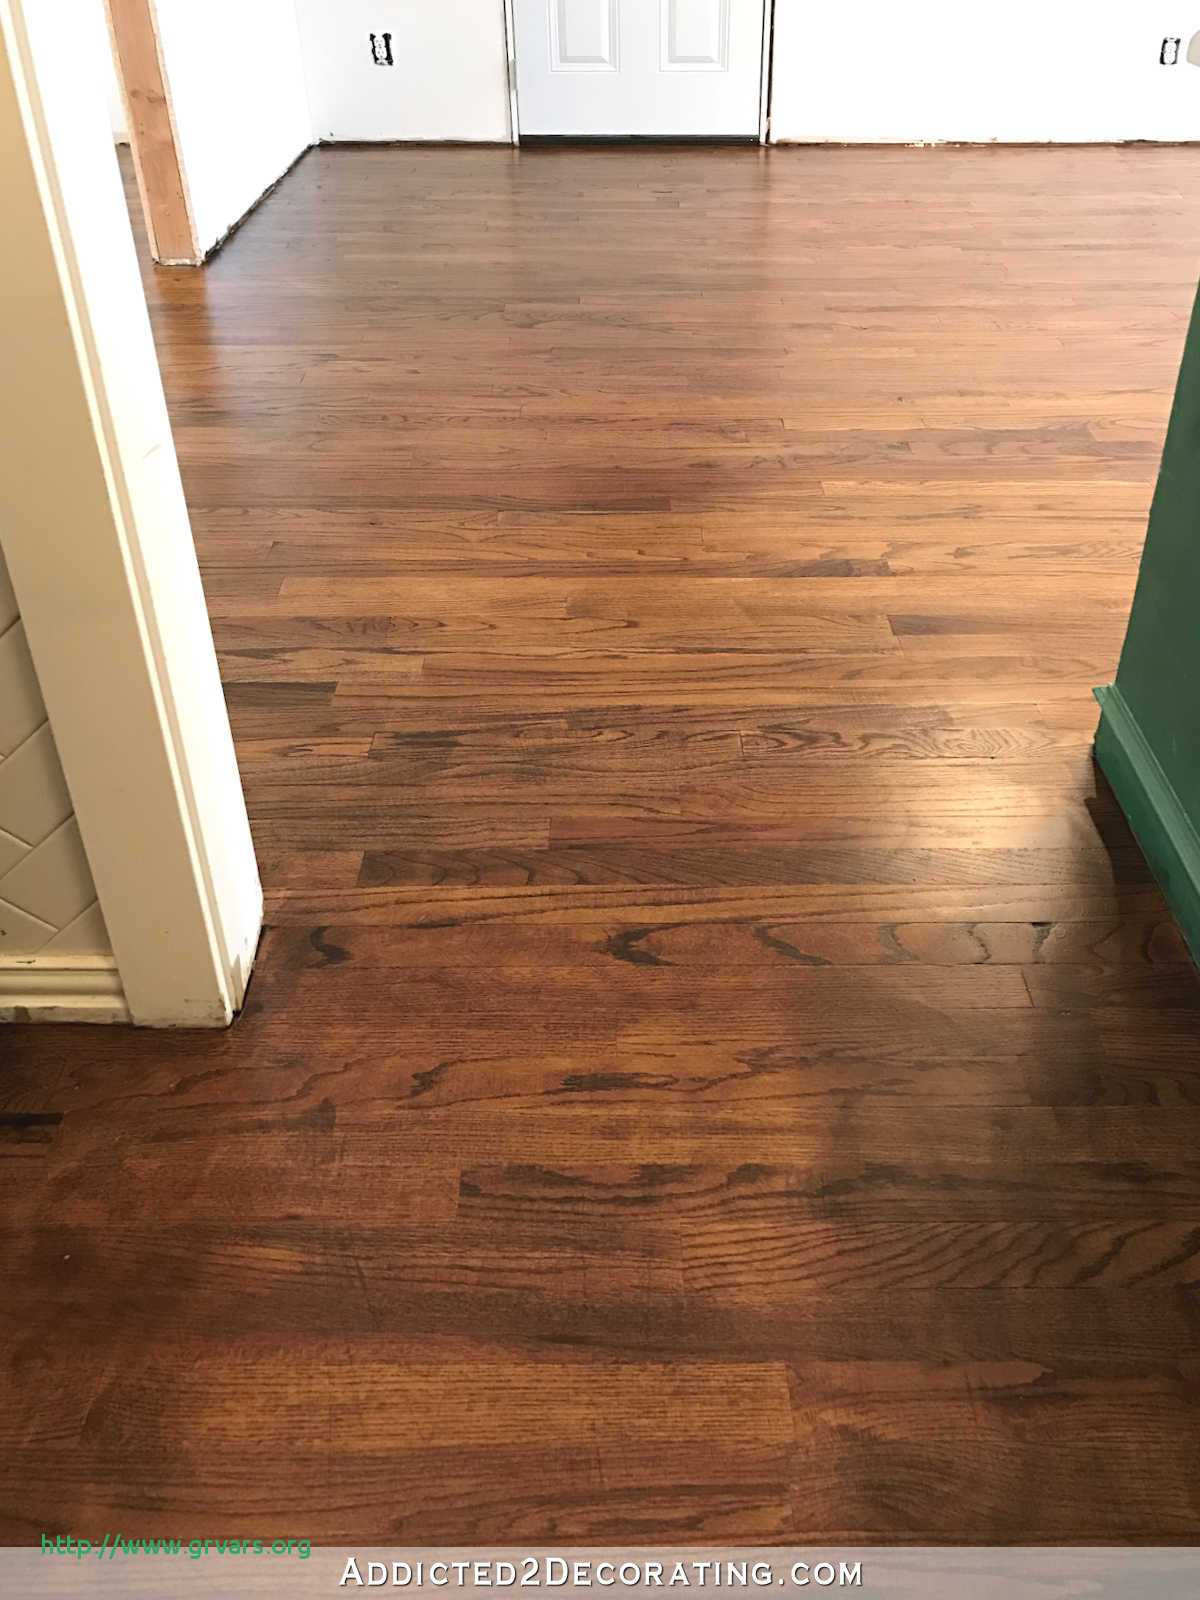 staining hardwood floors darker cost of 16 meilleur de how to sand and stain hardwood floor ideas blog intended for interior gorgeous my newly refinished red oak hardwood floors refinishing flooring calgaryh pet stains refinishing hardwood